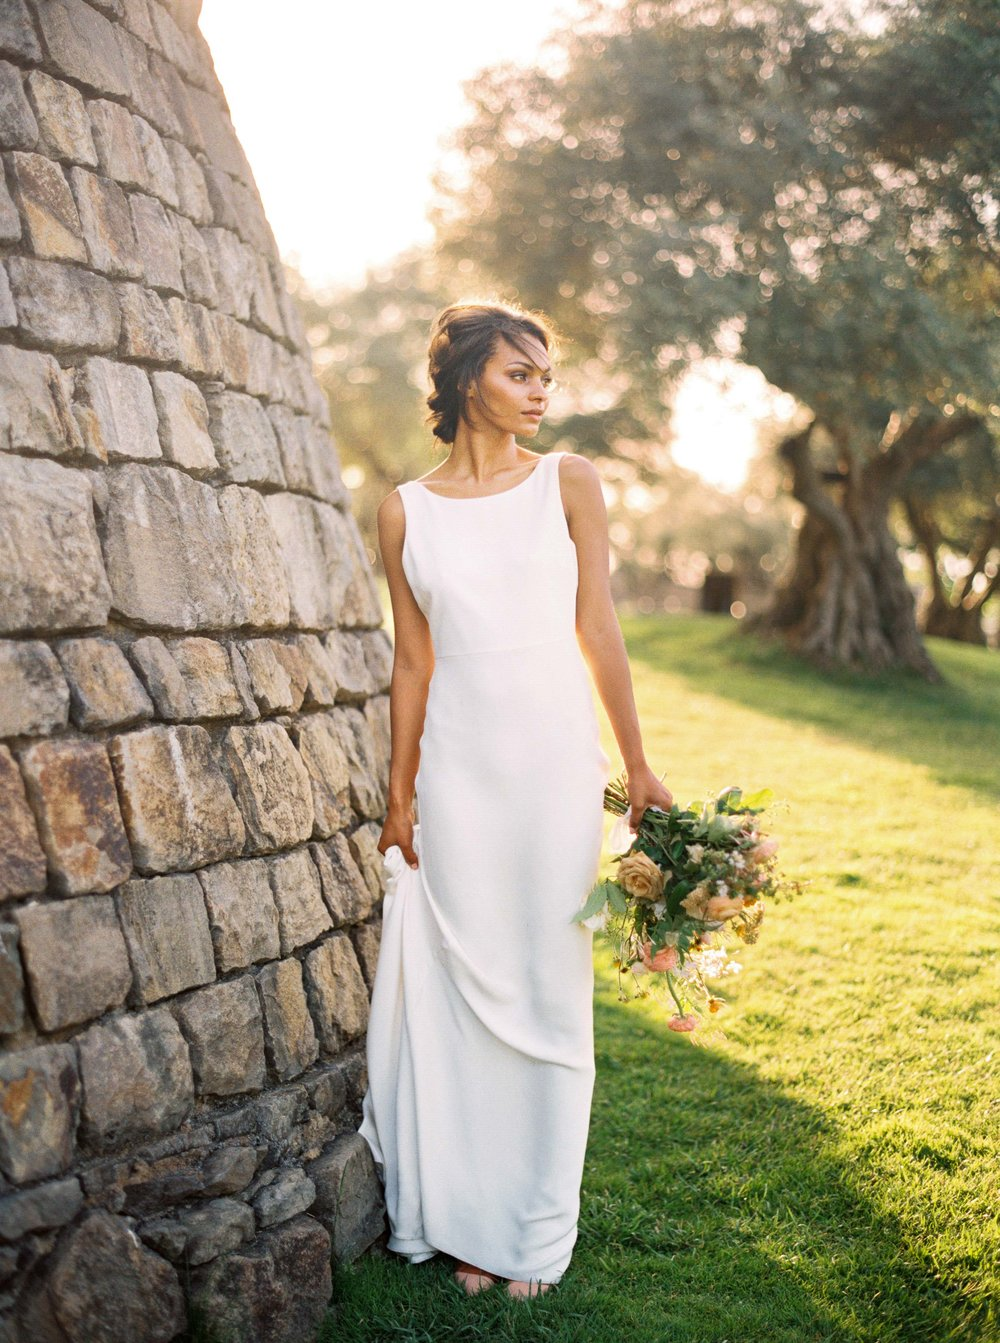 059napa_wedding_photographer_and_videographer_destination_and_elopement_photography.jpg